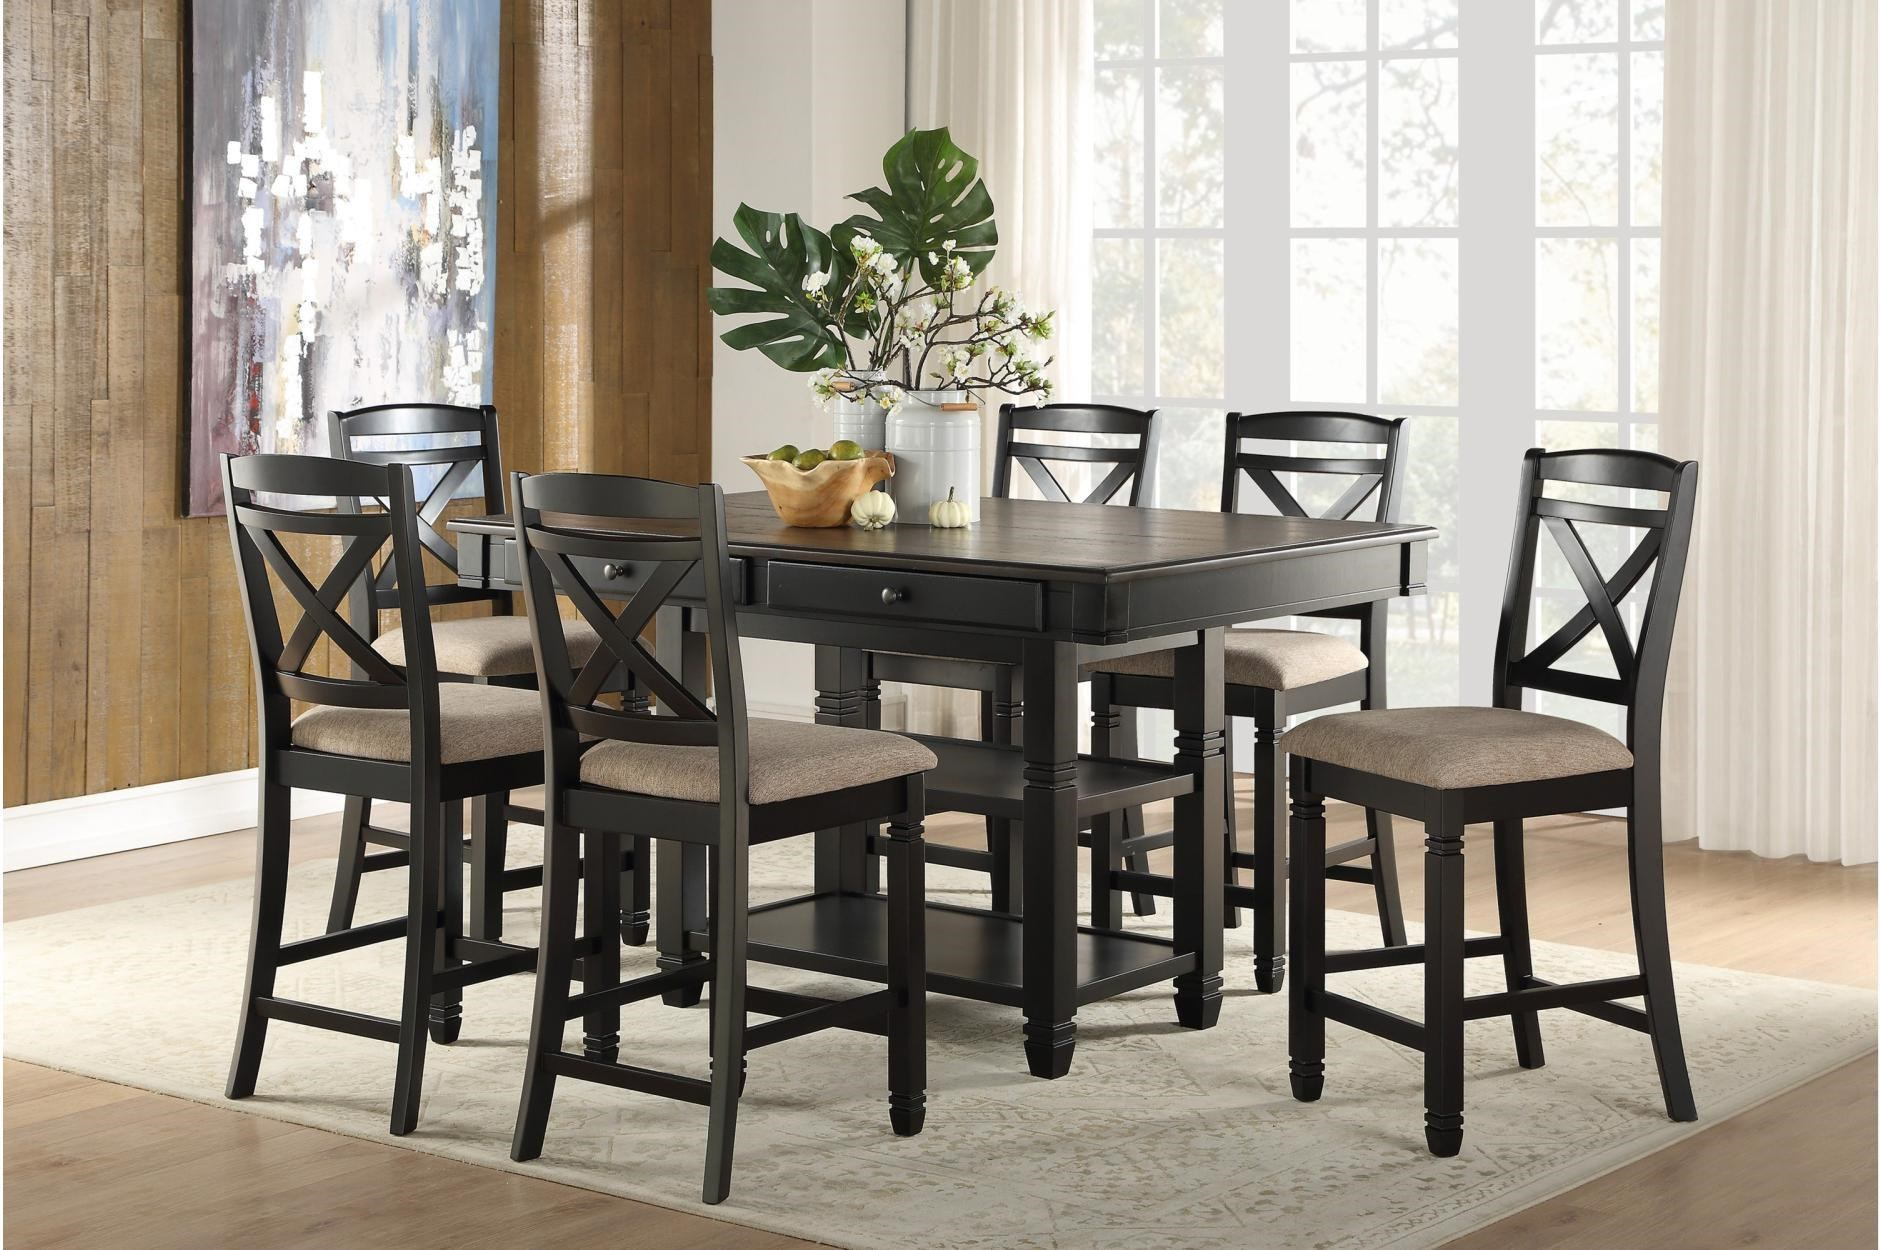 Baywater 7-Piece Dining Set by Homelegance at Dream Home Interiors